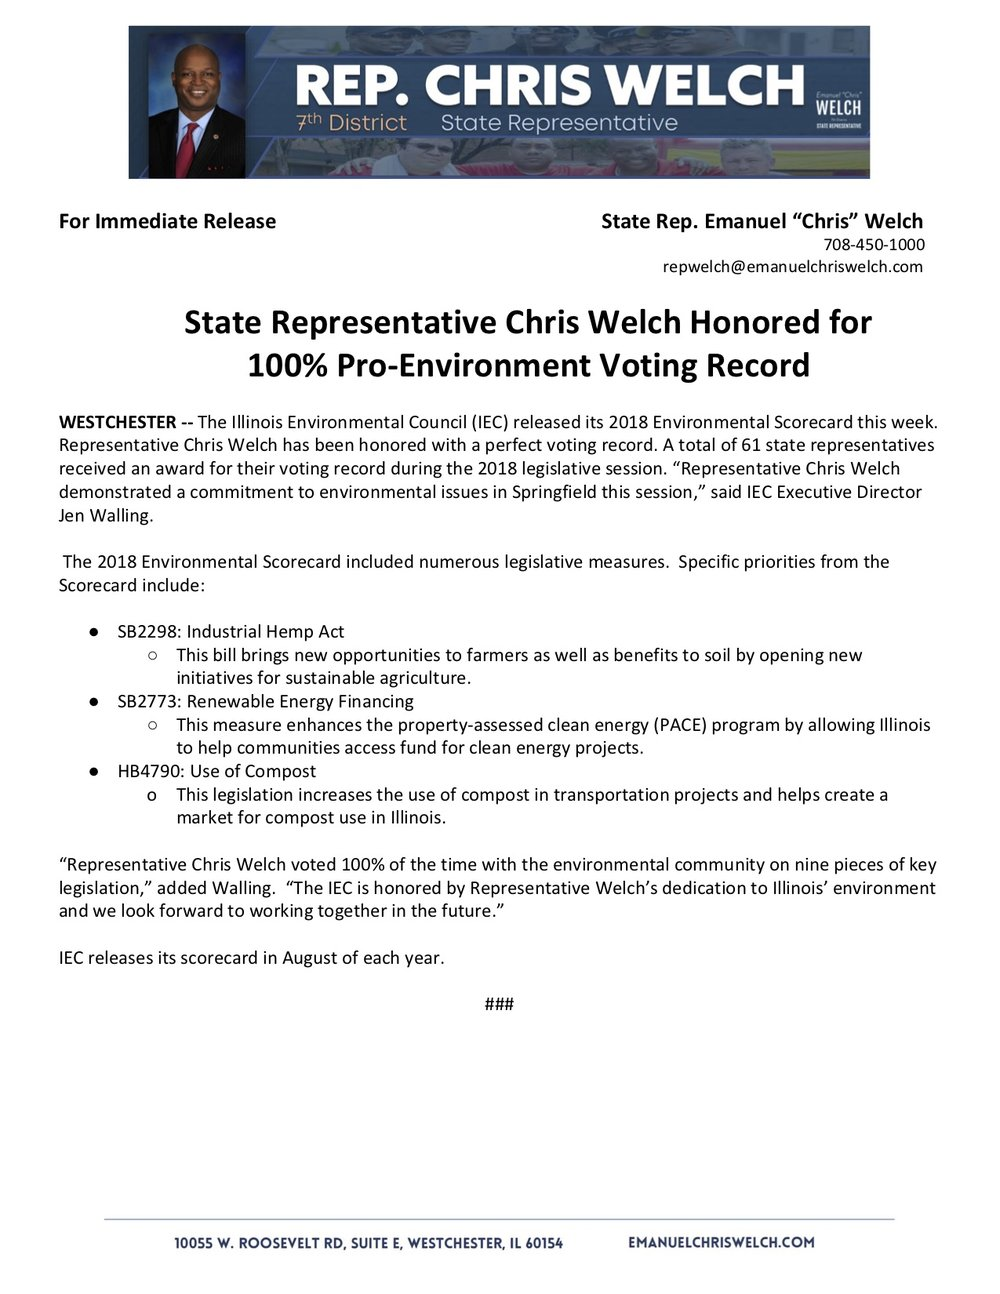 State Representative Chris Welch Honored for 100% Pro-Environment Voting Record  (August 13, 2018)